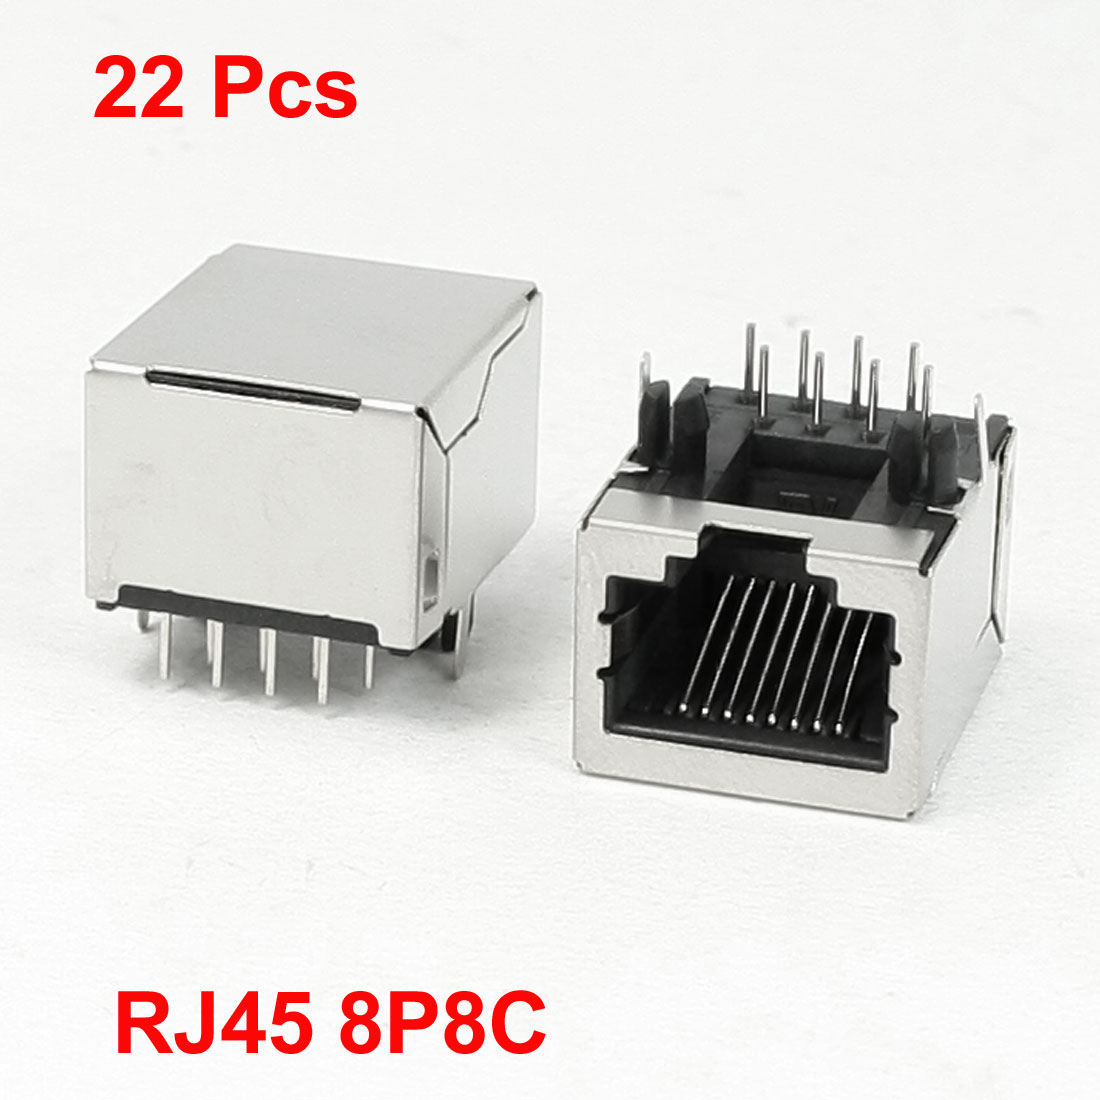 22 Pcs Stainless Steel Casing Right Angle Pins 8P8C RJ45 PCB Jack for Network